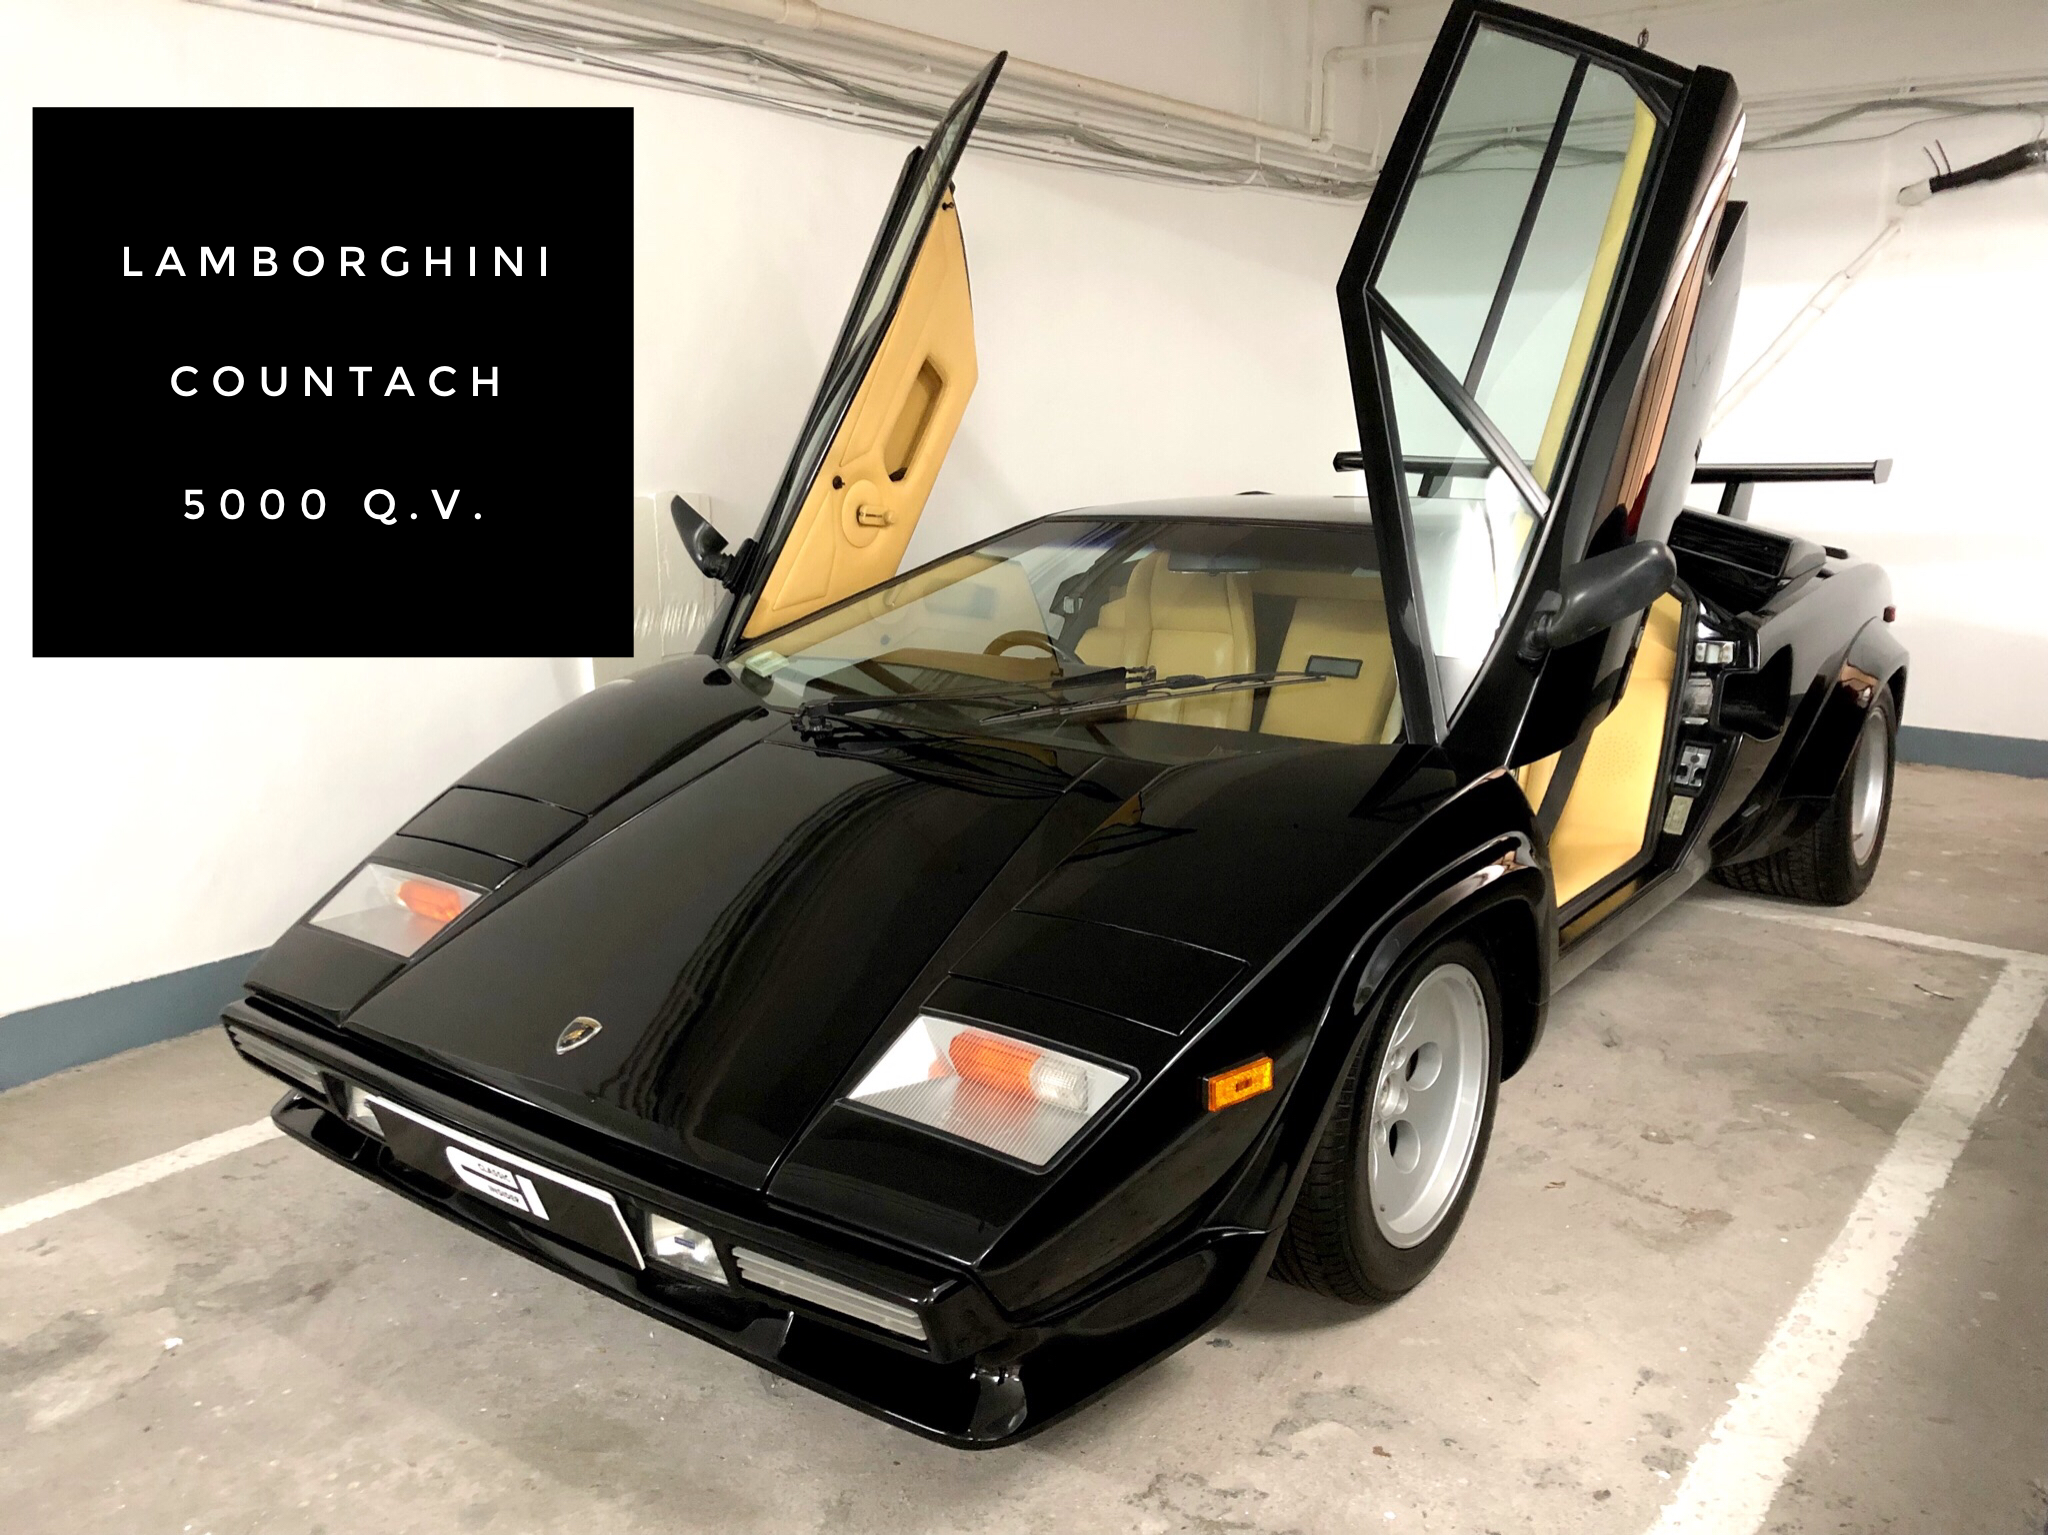 Lamborghini Countach Sold Classic Insider Classic Cars For